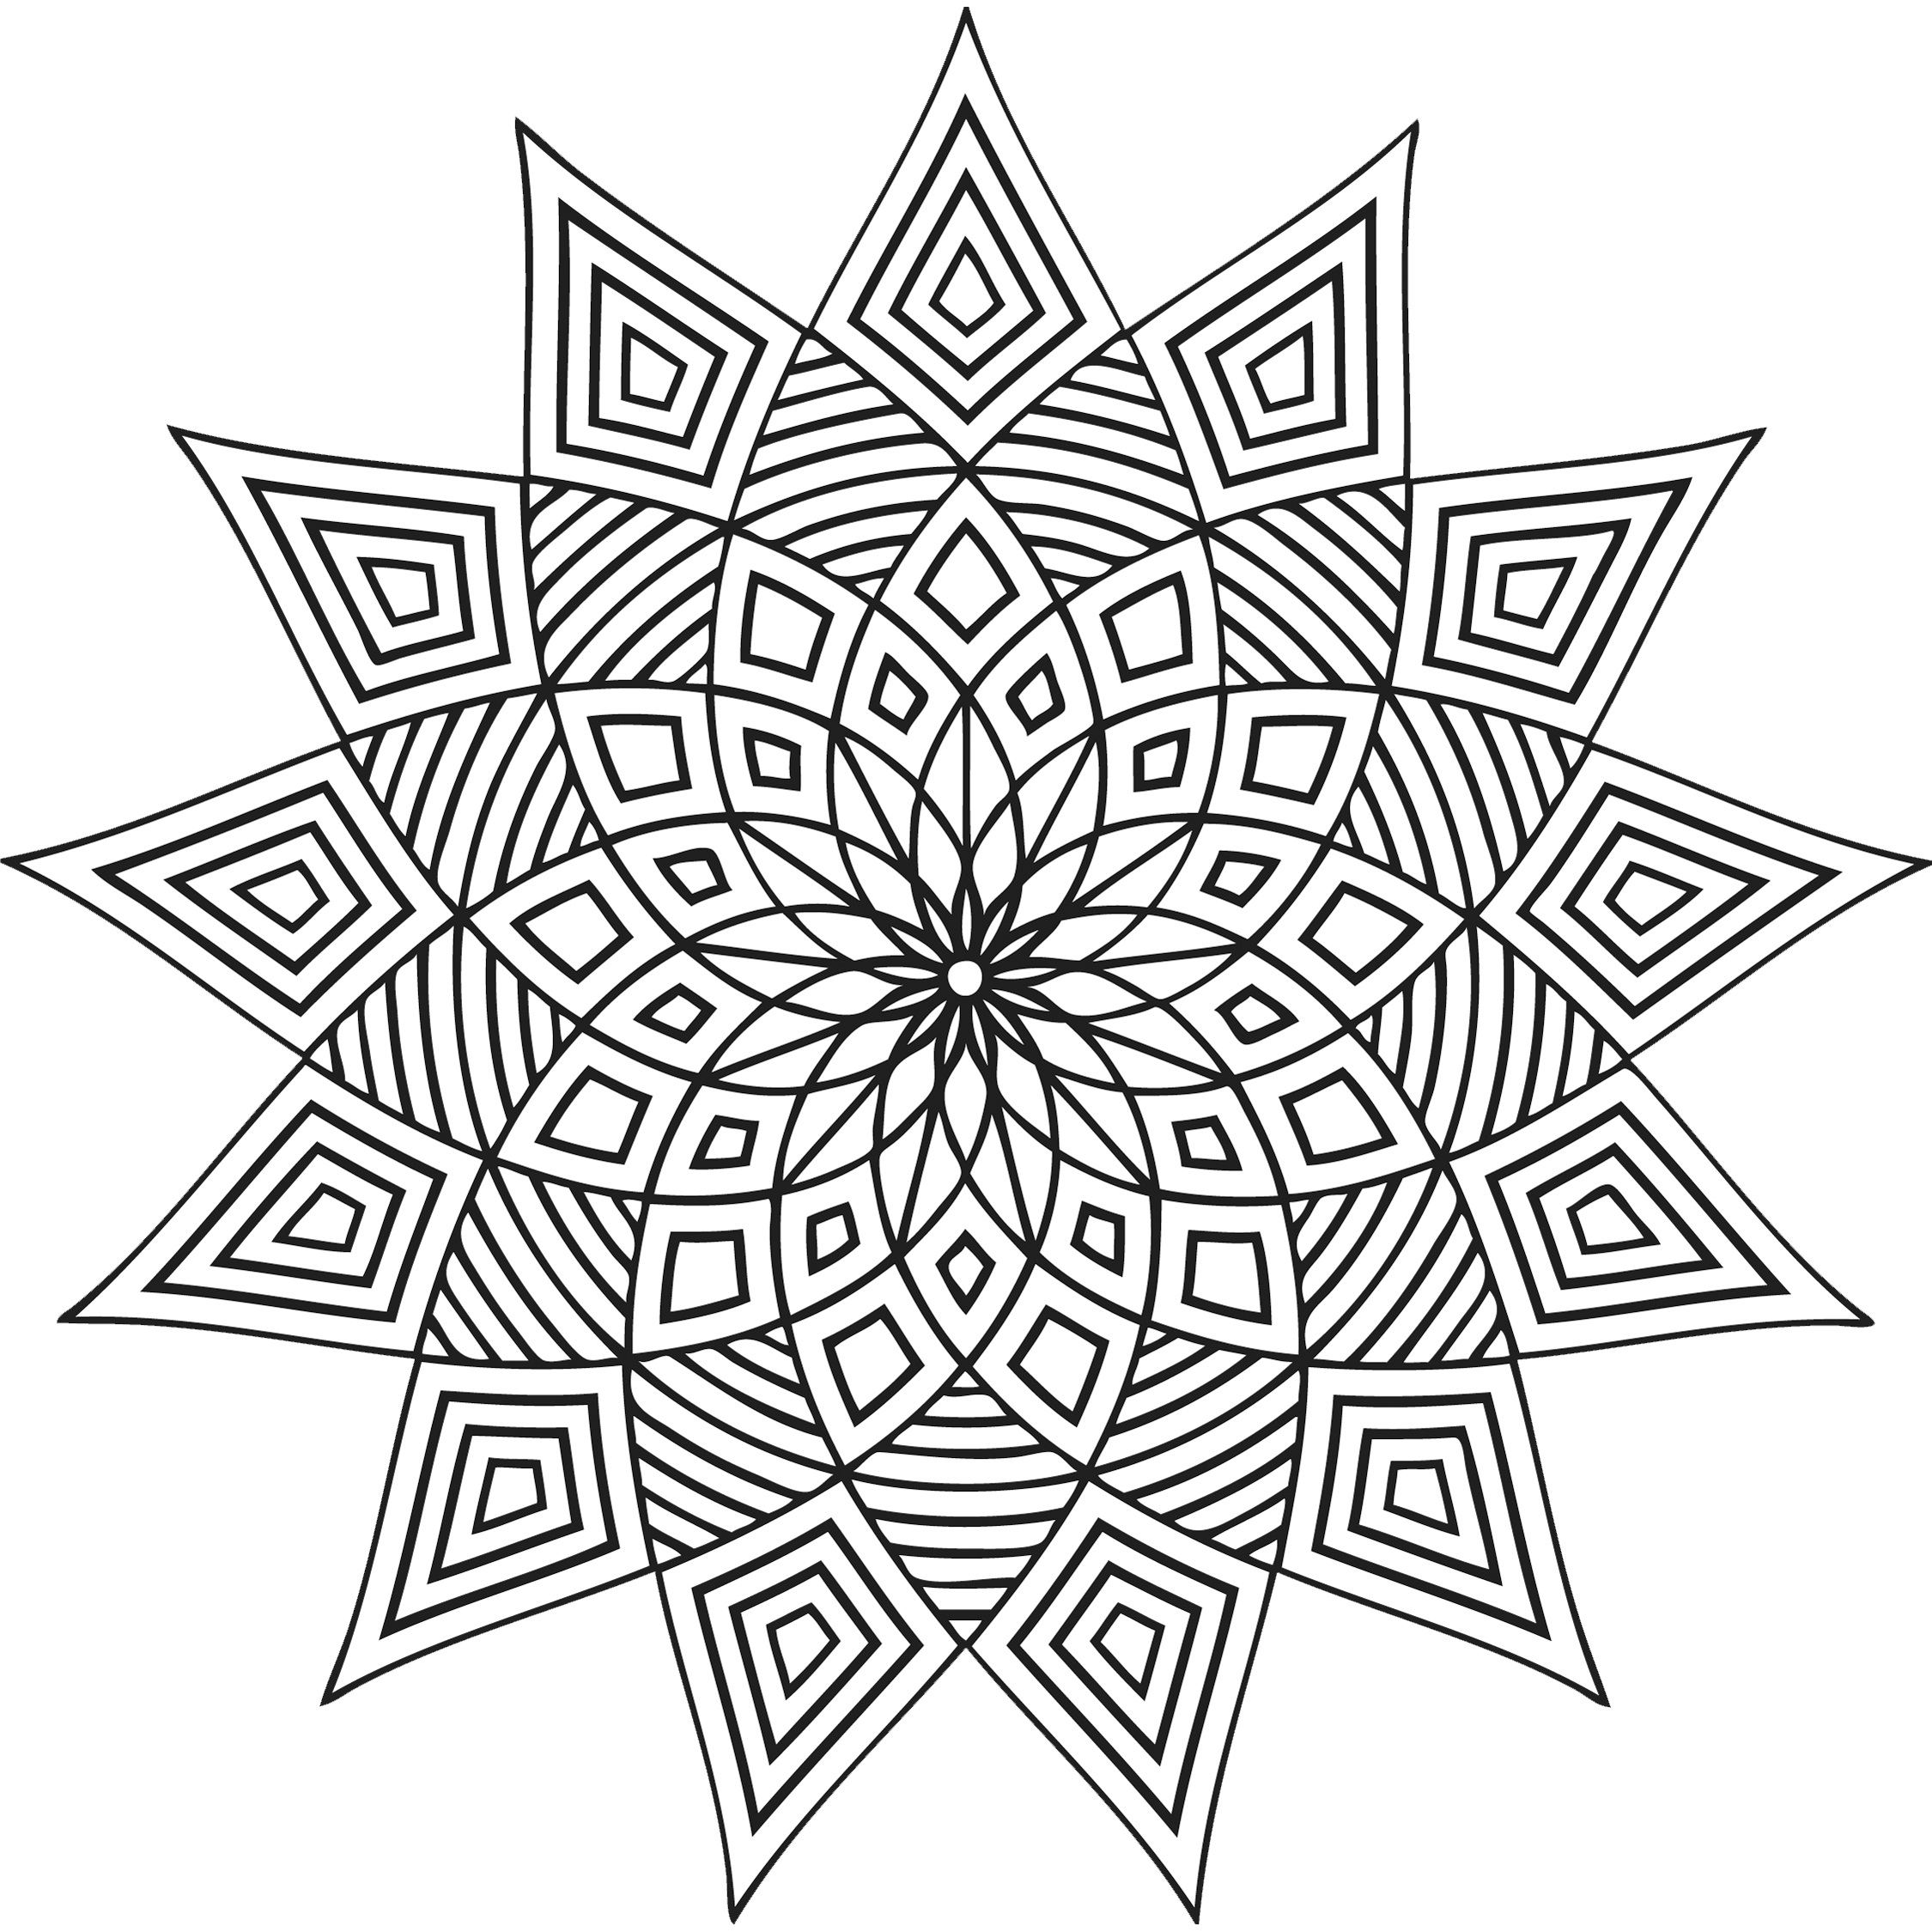 Geometric Coloring Pages Pdf Free Printable : Free printable geometric coloring pages for kids